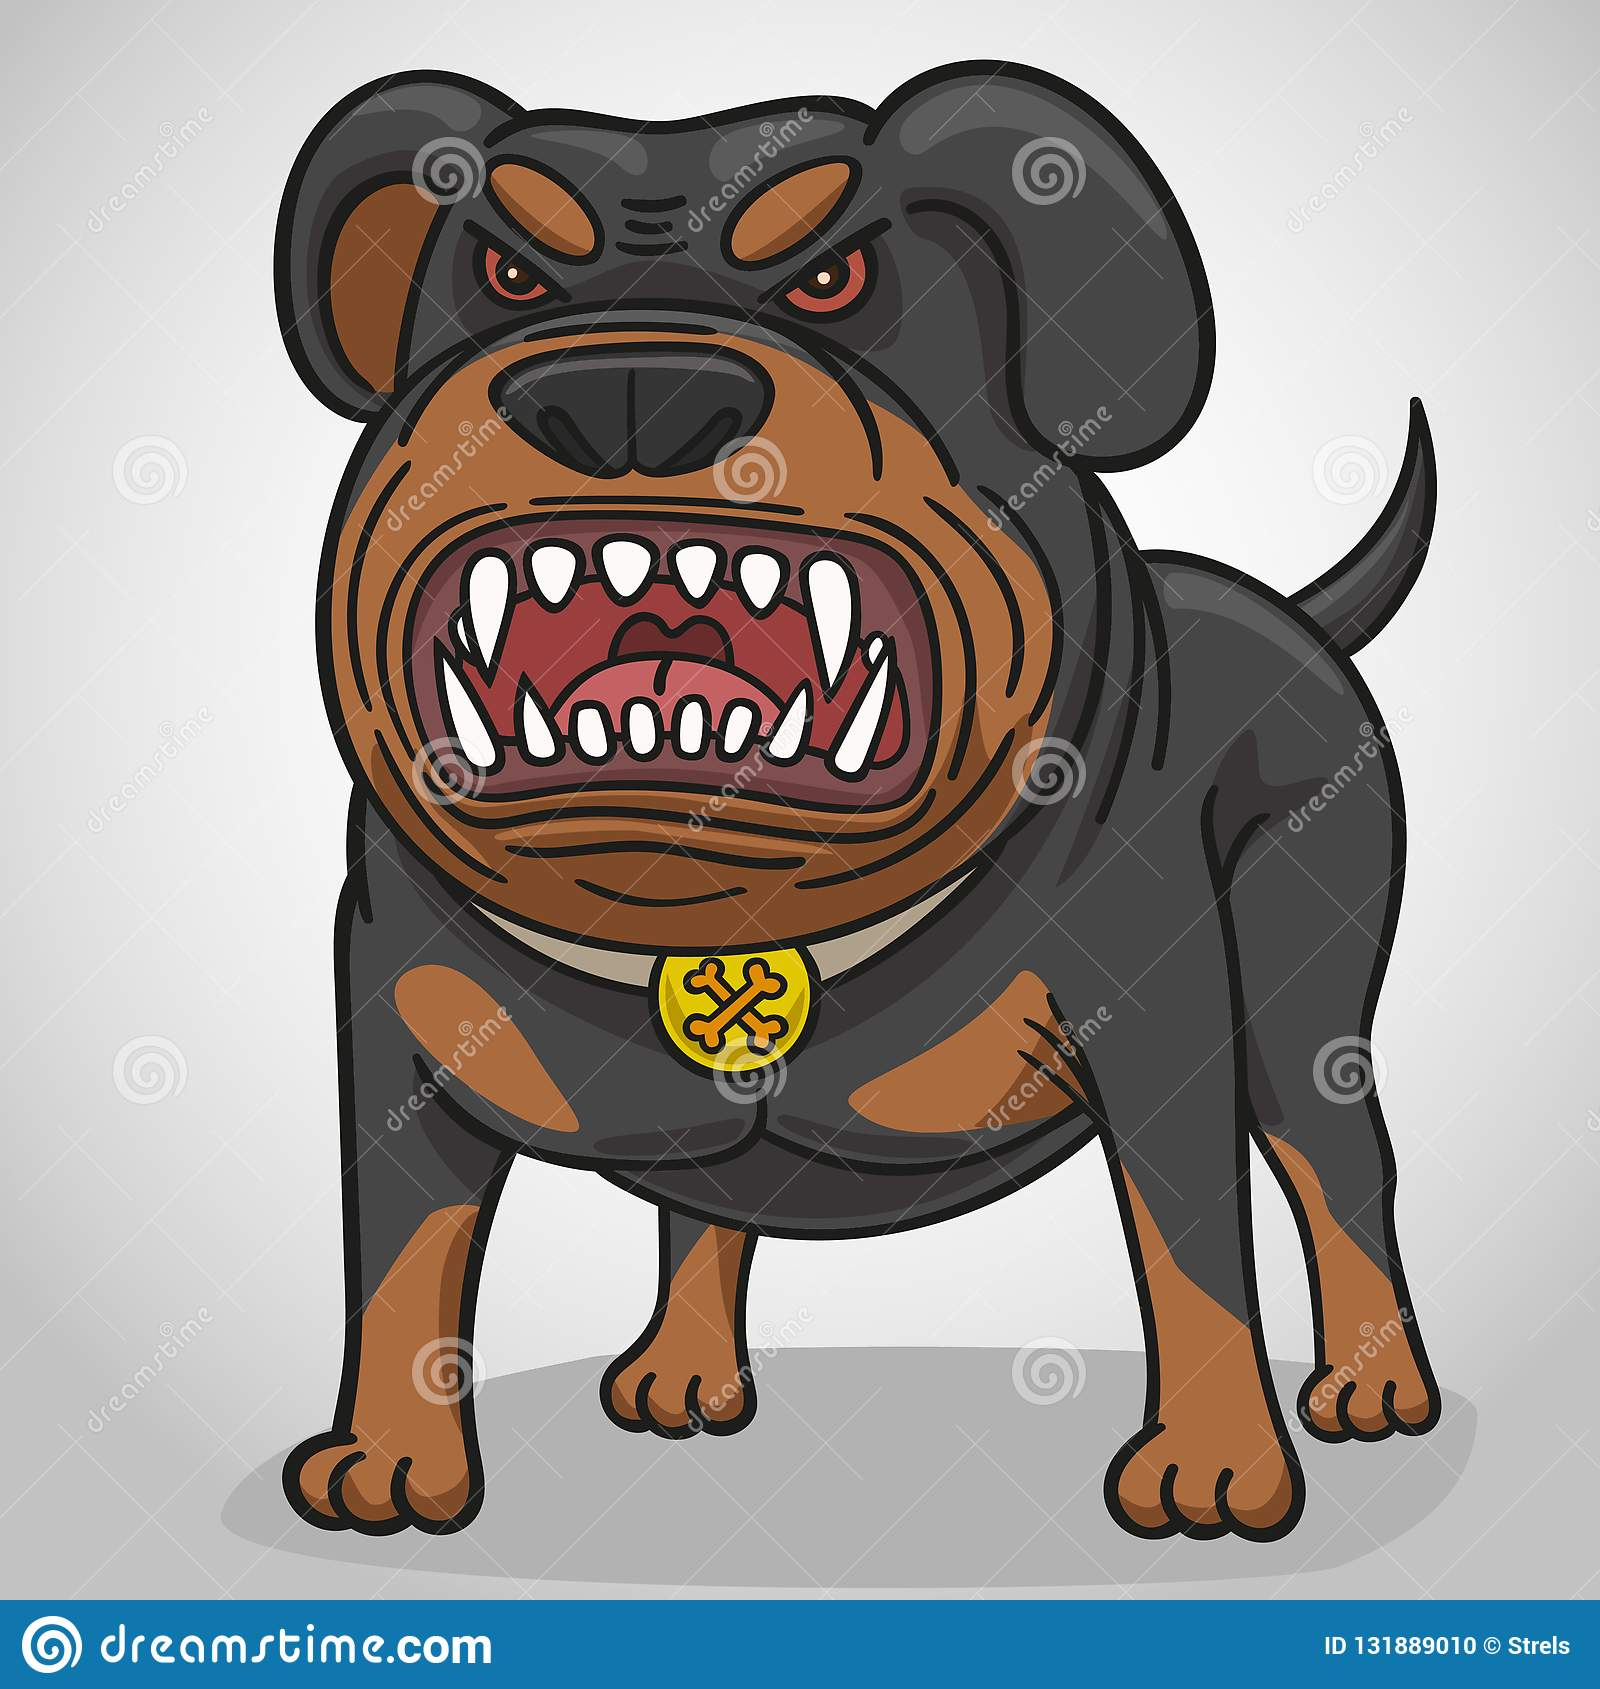 Cartoon angry dog of breed a Rottweiler.